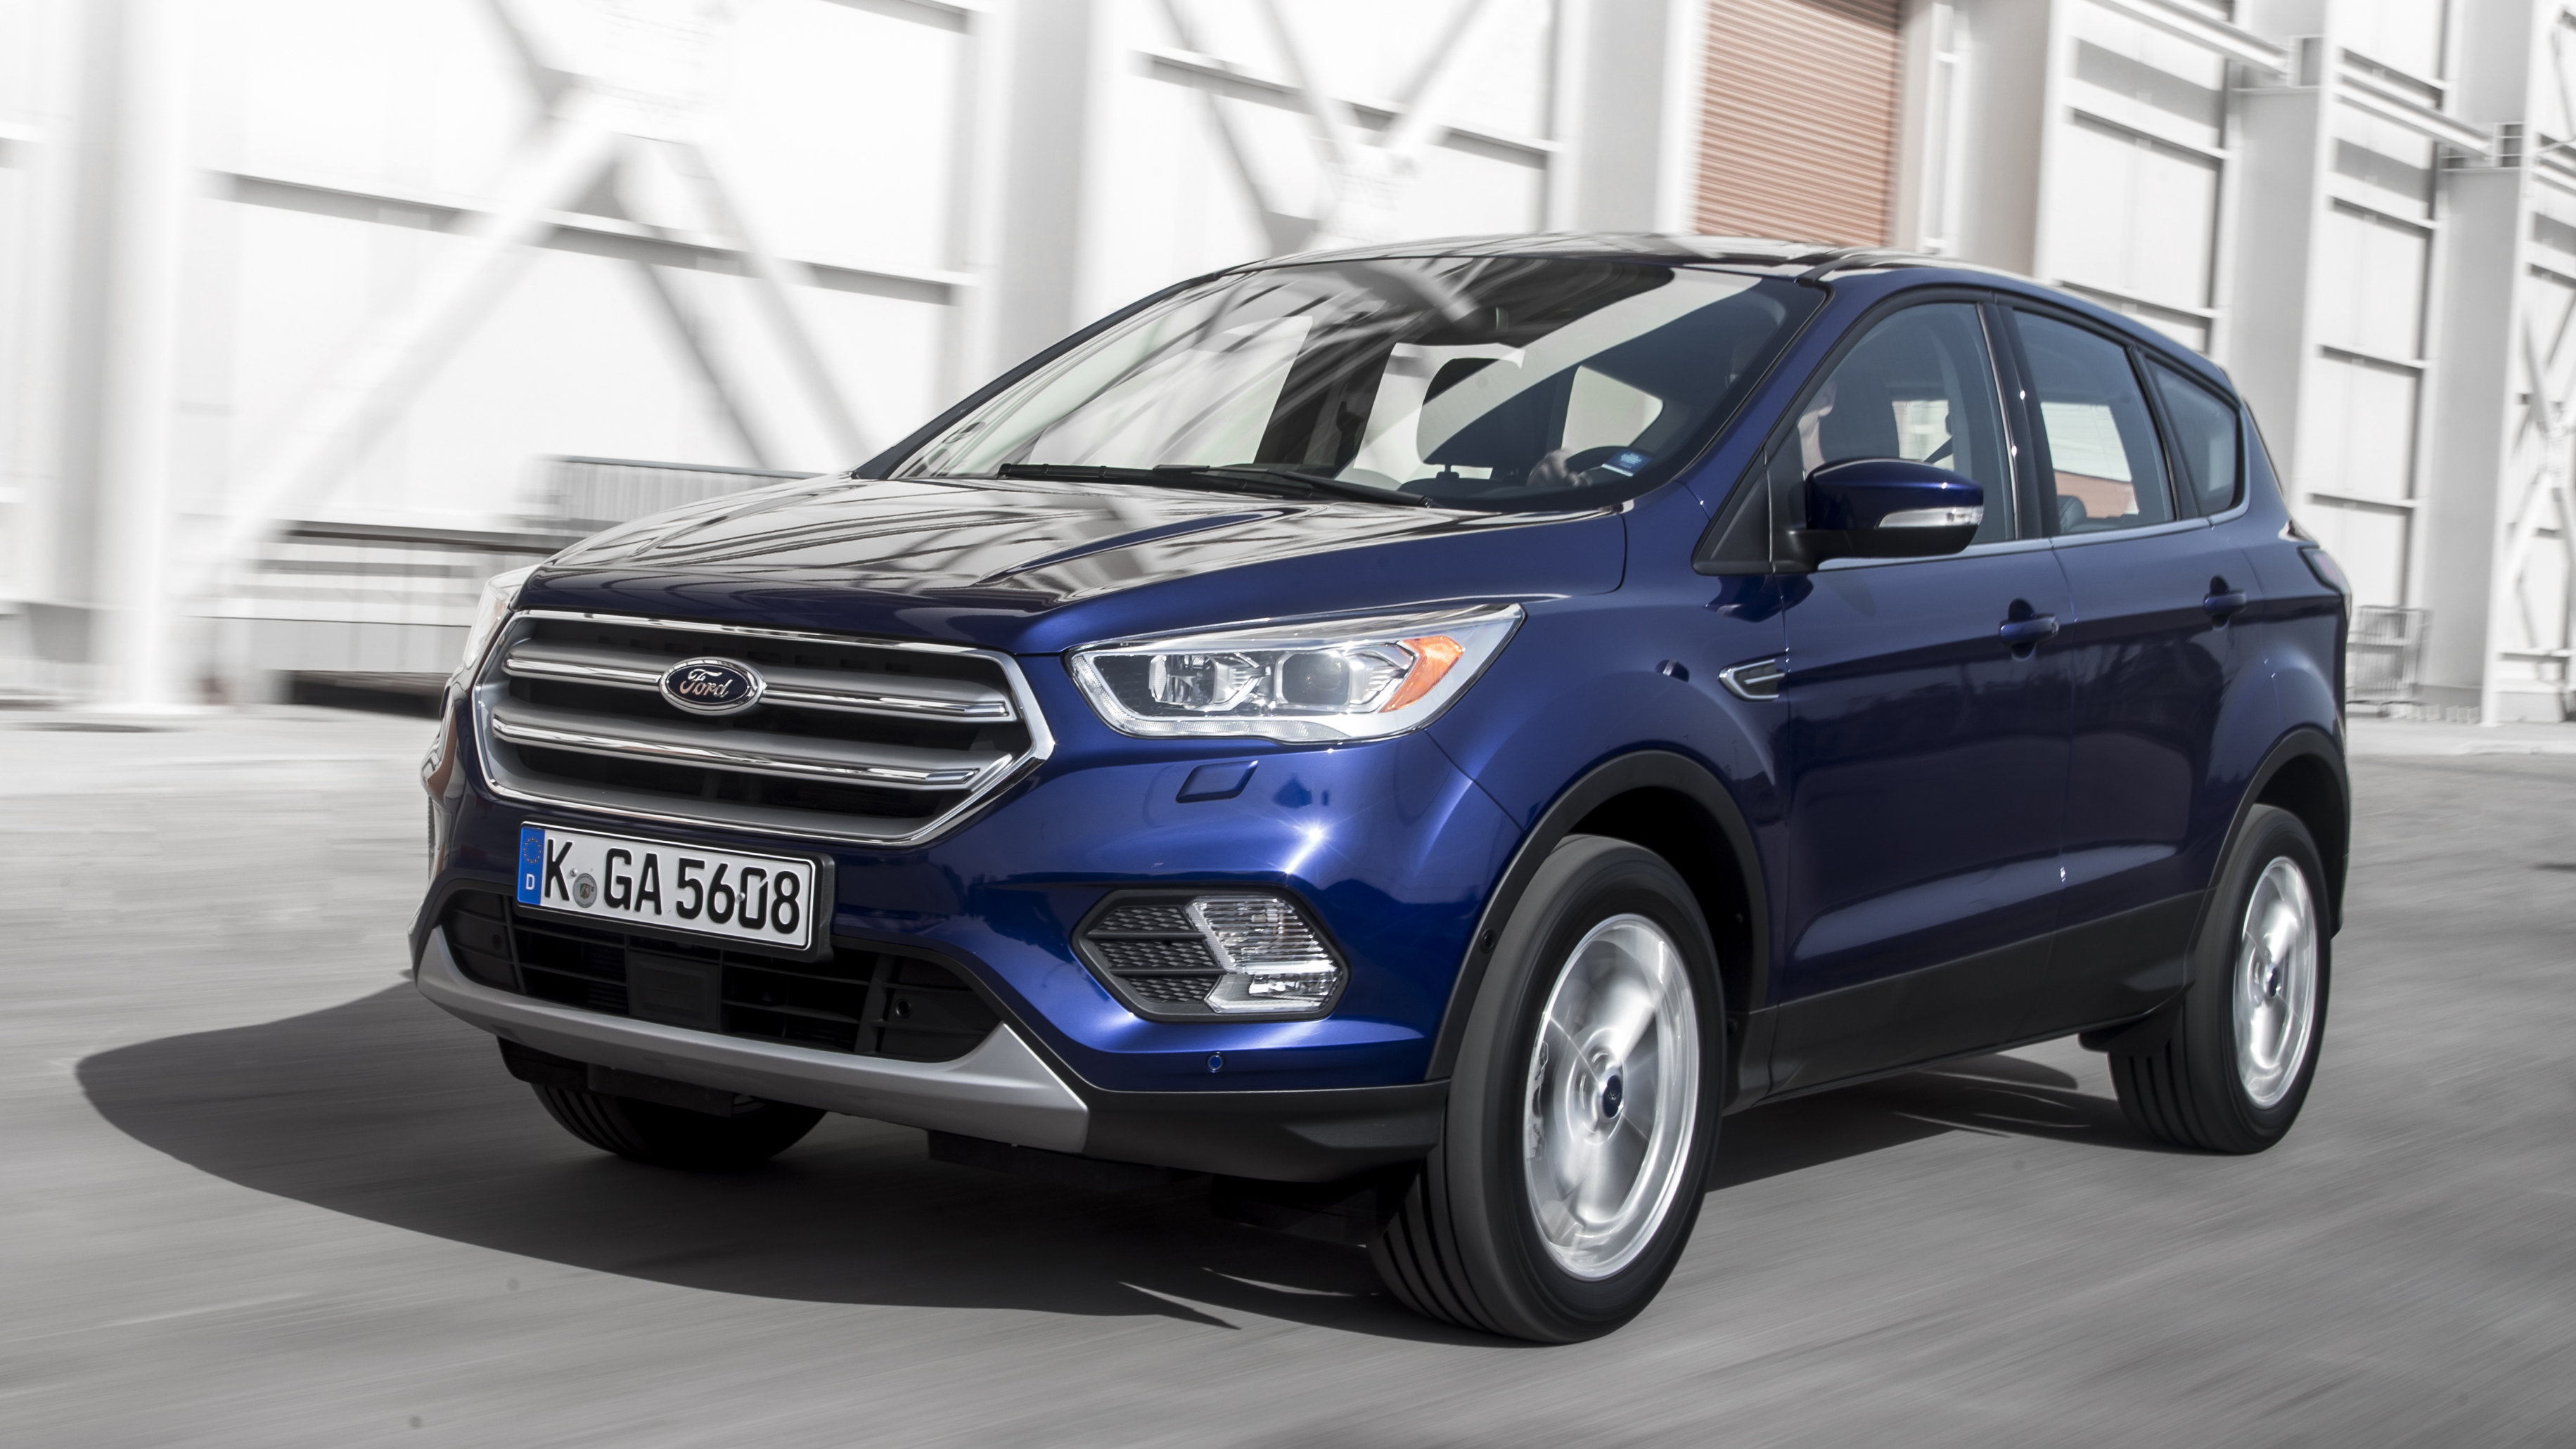 2018 ford kuga review top gear. Black Bedroom Furniture Sets. Home Design Ideas